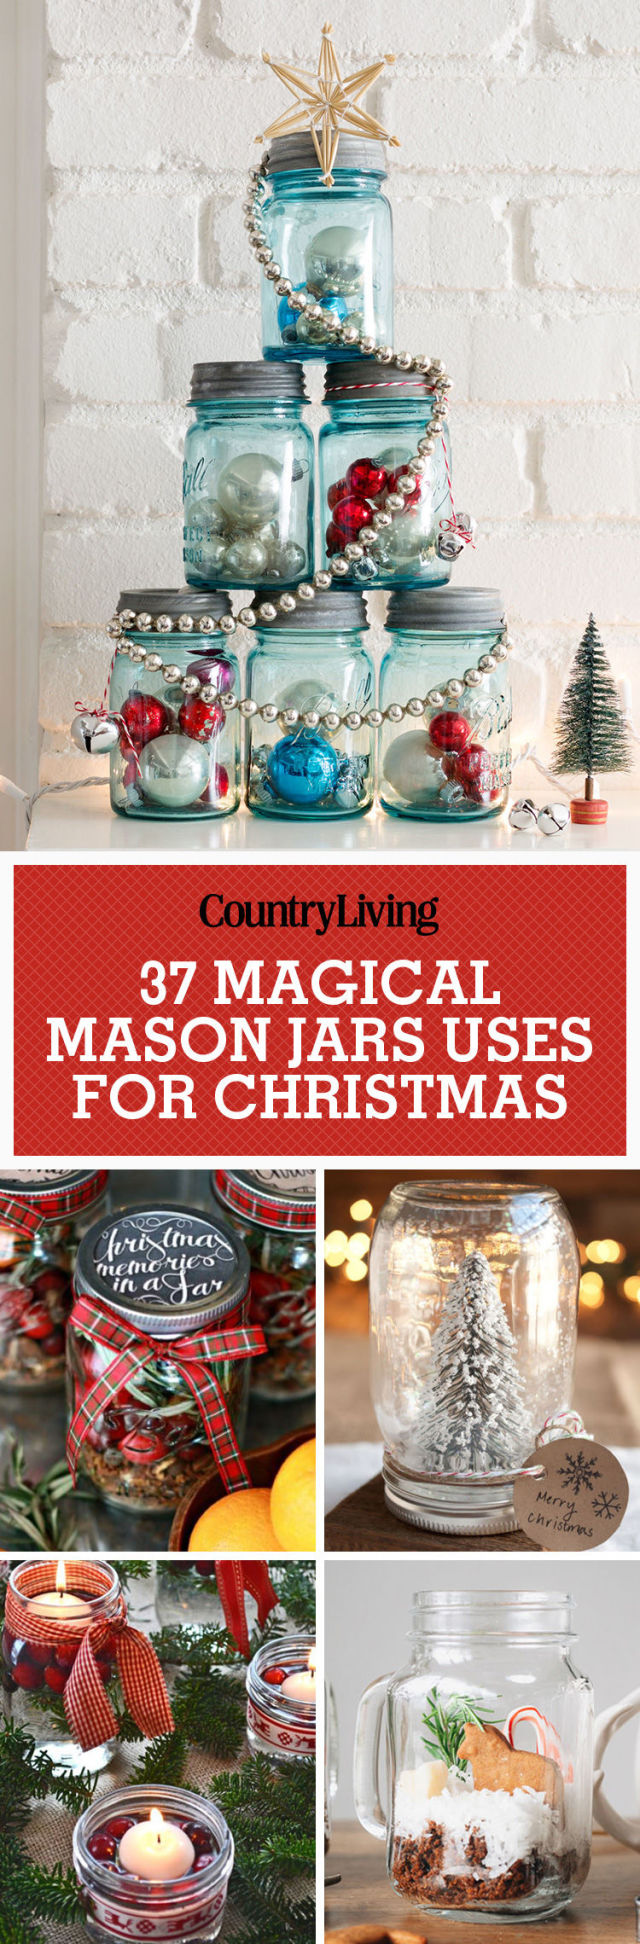 Storage For Christmas Decorations 40 Mason Jar Christmas Crafts Fun Diy Holiday Craft Projects